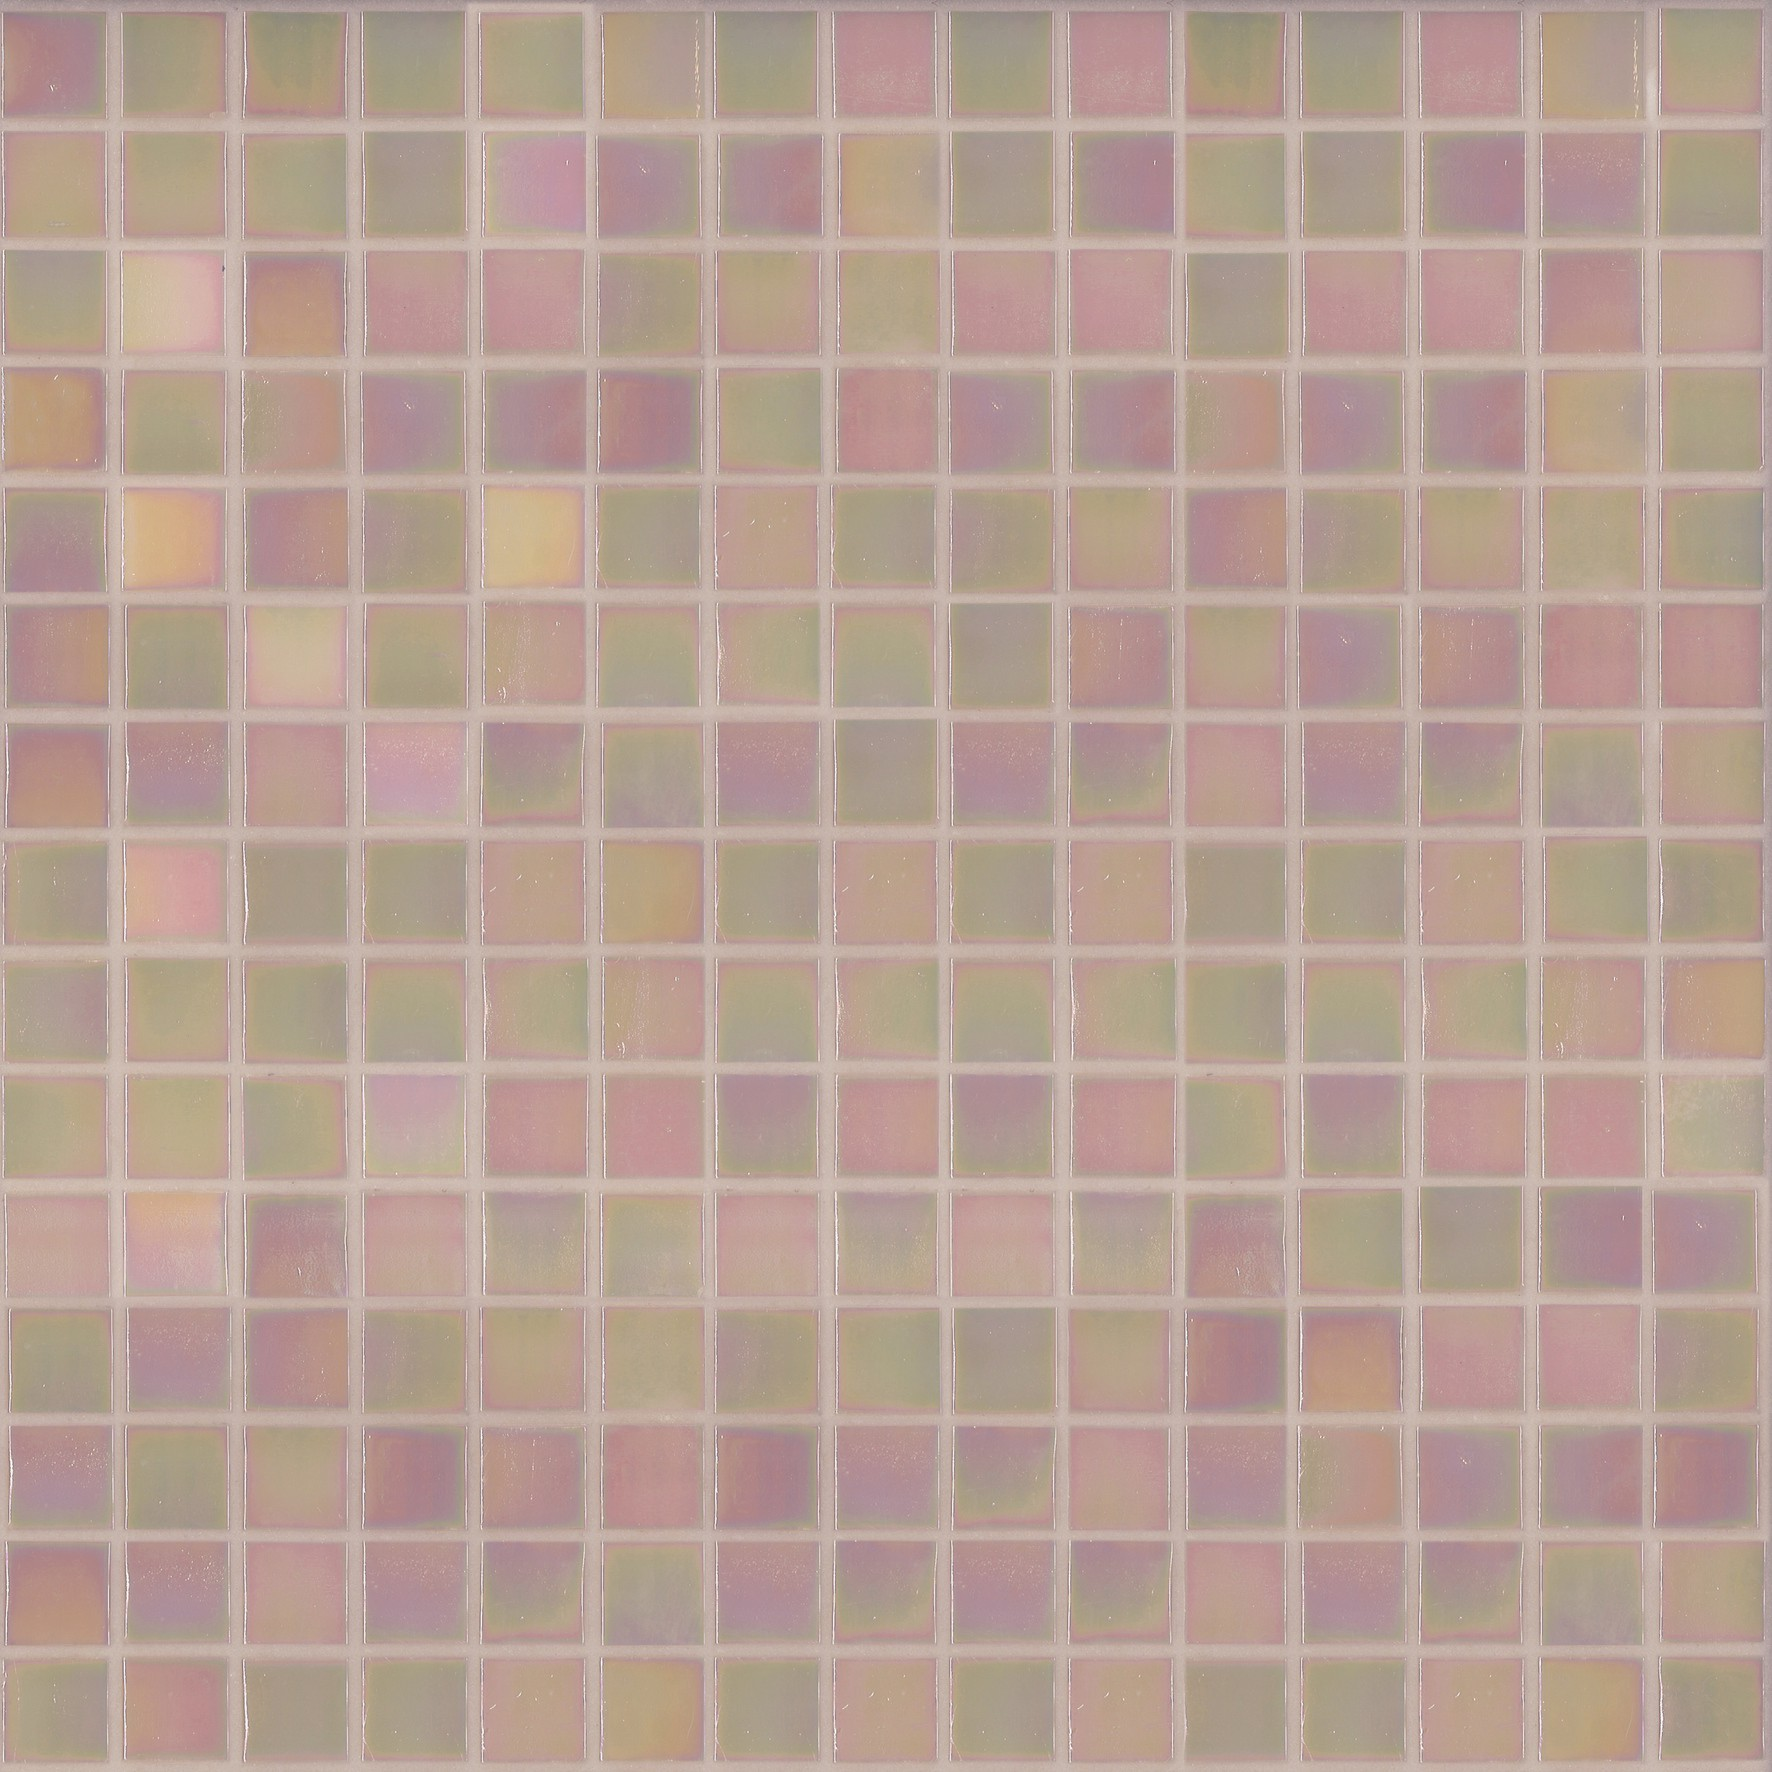 "Bisazza Gloss GL 04 Glass Mosaic Tile 20mm - 3/4"", 1 sheet"